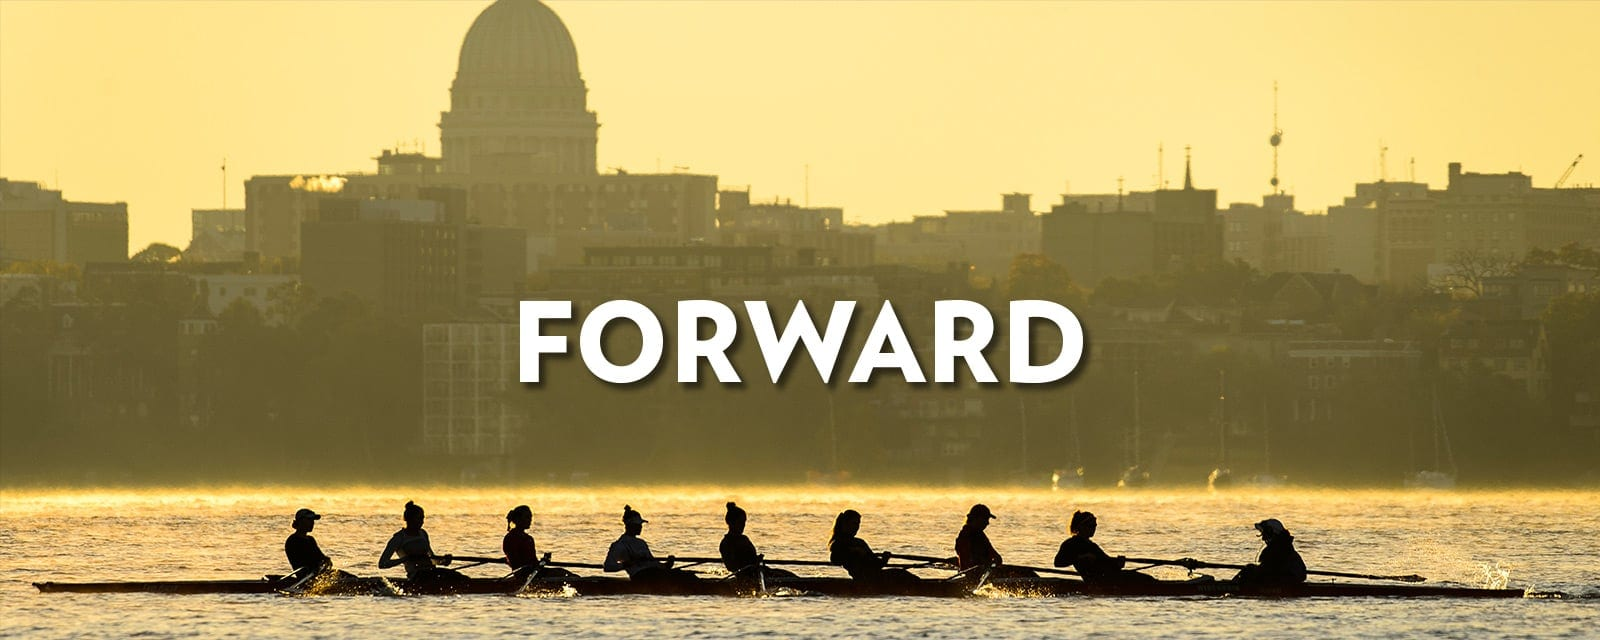 Silhouette of crew team rowing in front of the Madison skyline with the word forward